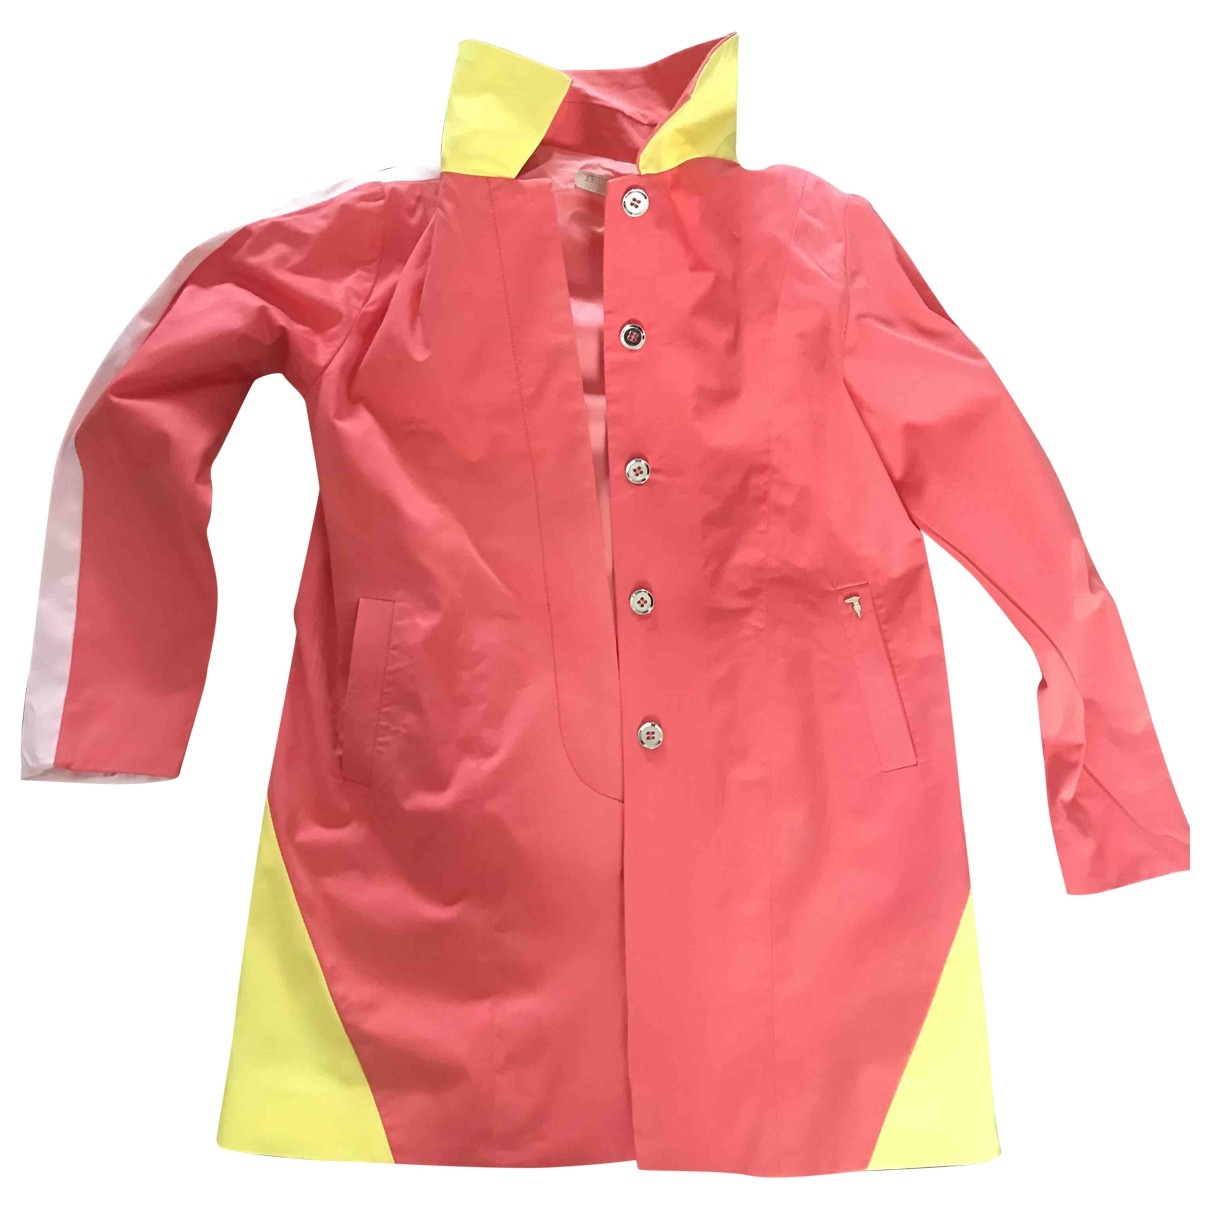 Trussardi \N Multicolour Cotton jacket & coat for Kids 6 years - up to 114cm FR